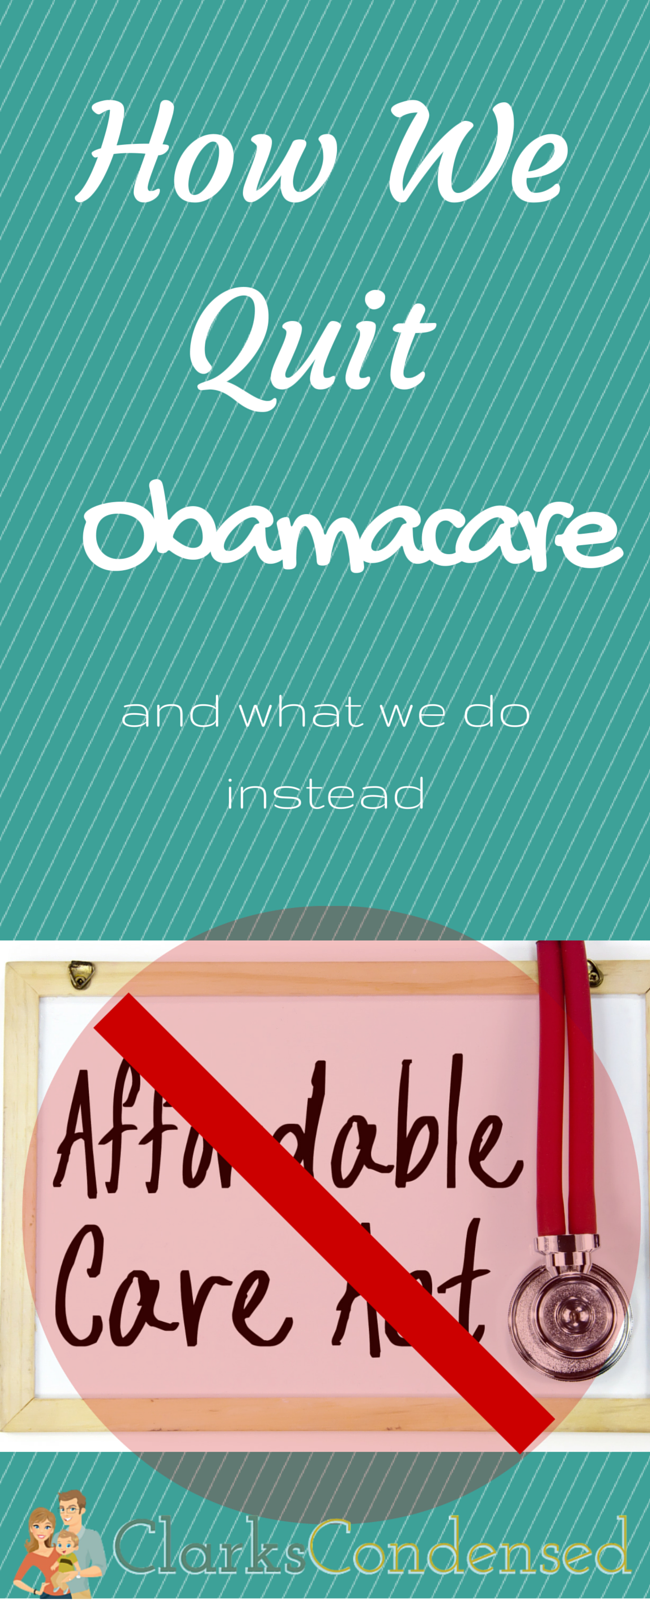 Our Health Insurance Was Just Getting Too High With No Benefits